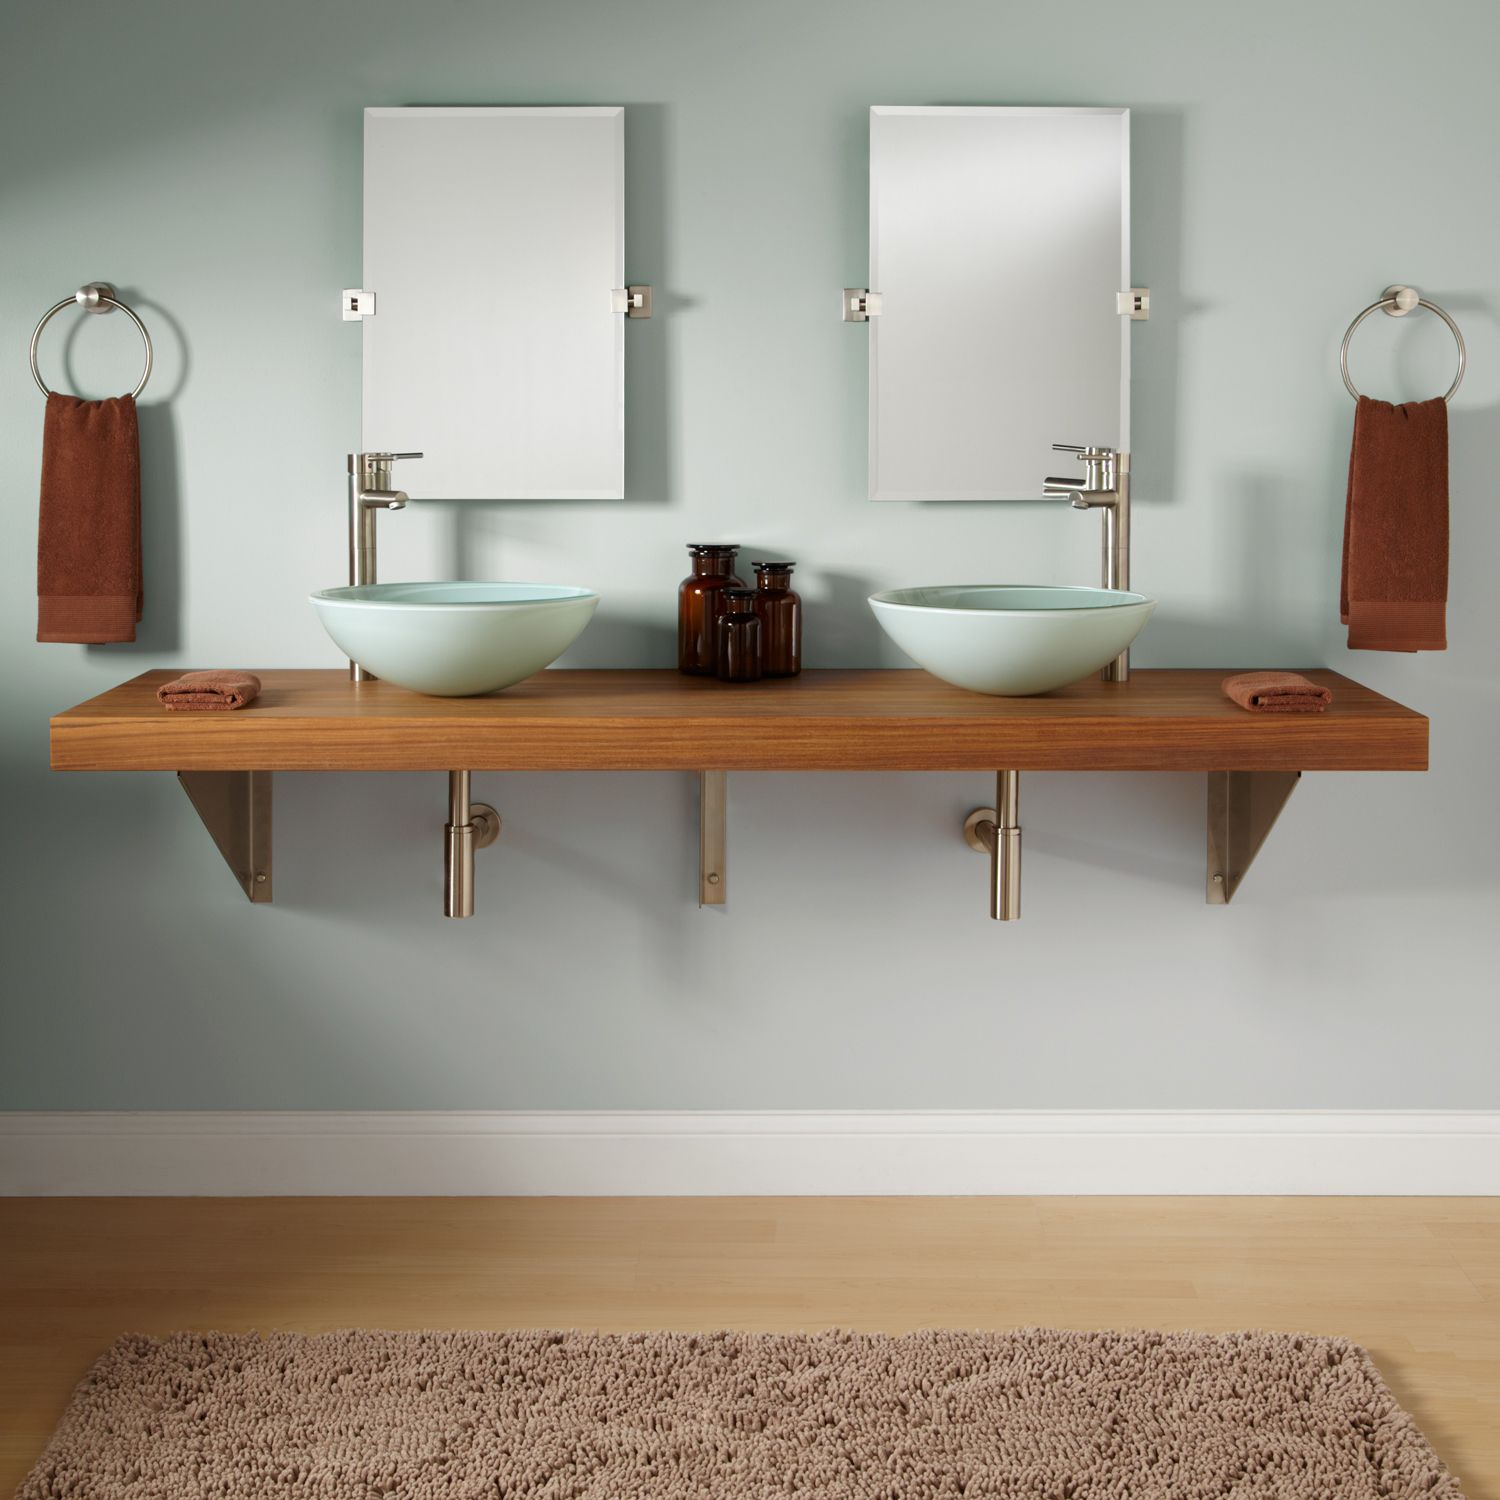 73 teak wall mount vanity for vessel sinks teak wall on wall mount id=38868